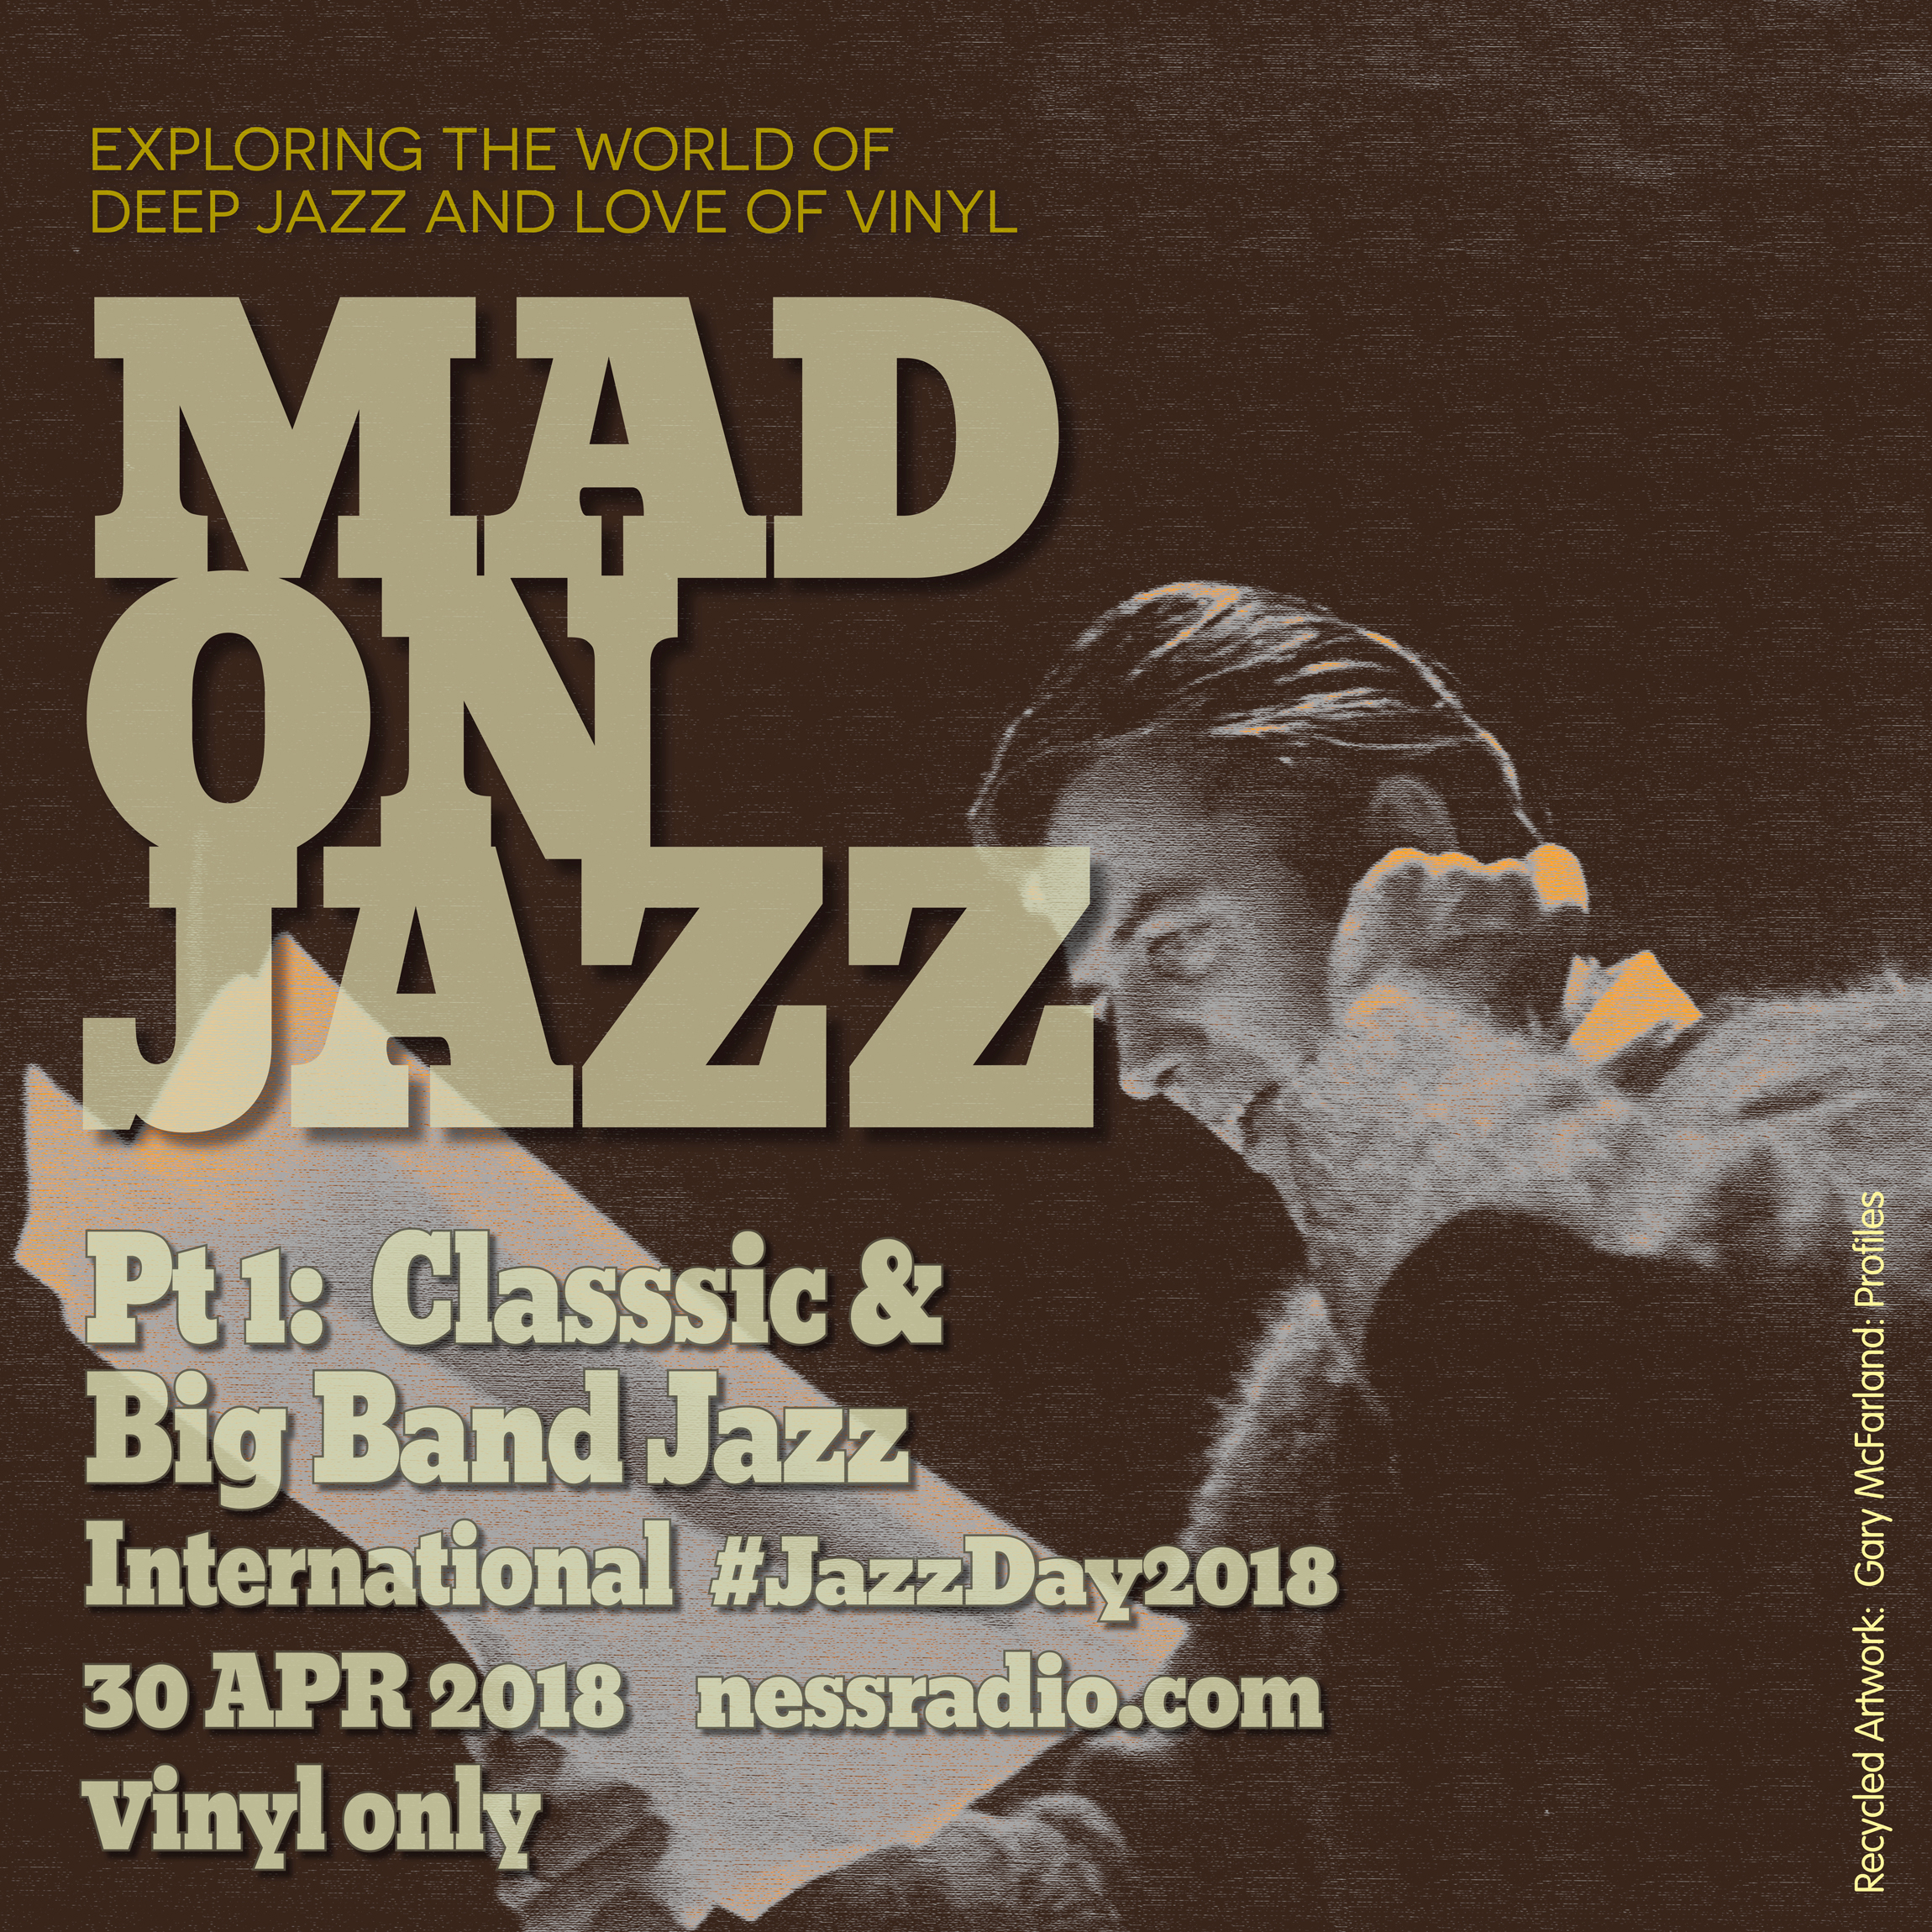 MADONJAZZ International Jazz Day special Pt 1: Classic and Big Band Jazz